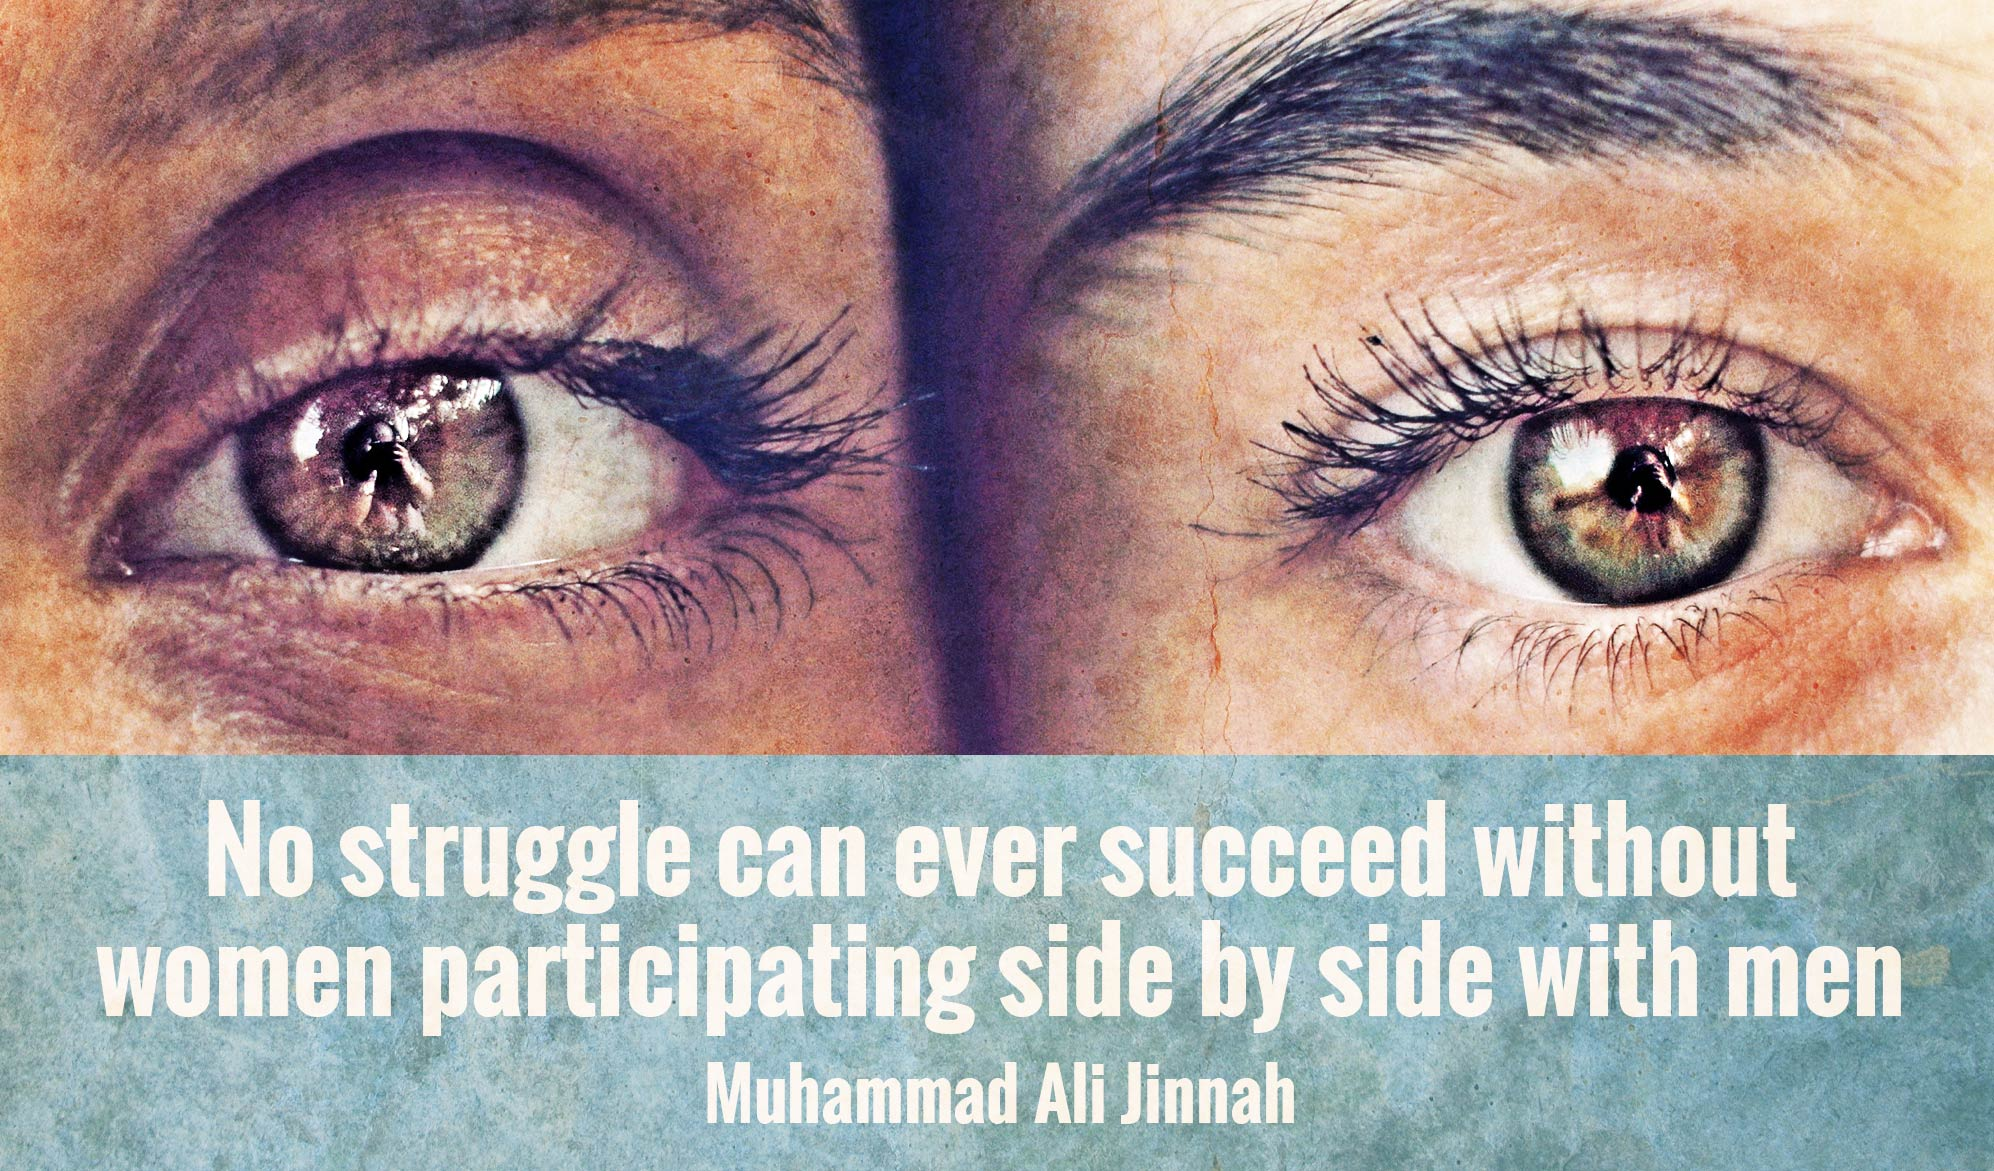 daily inspirational quote image: close up on two women's eyes, side by side